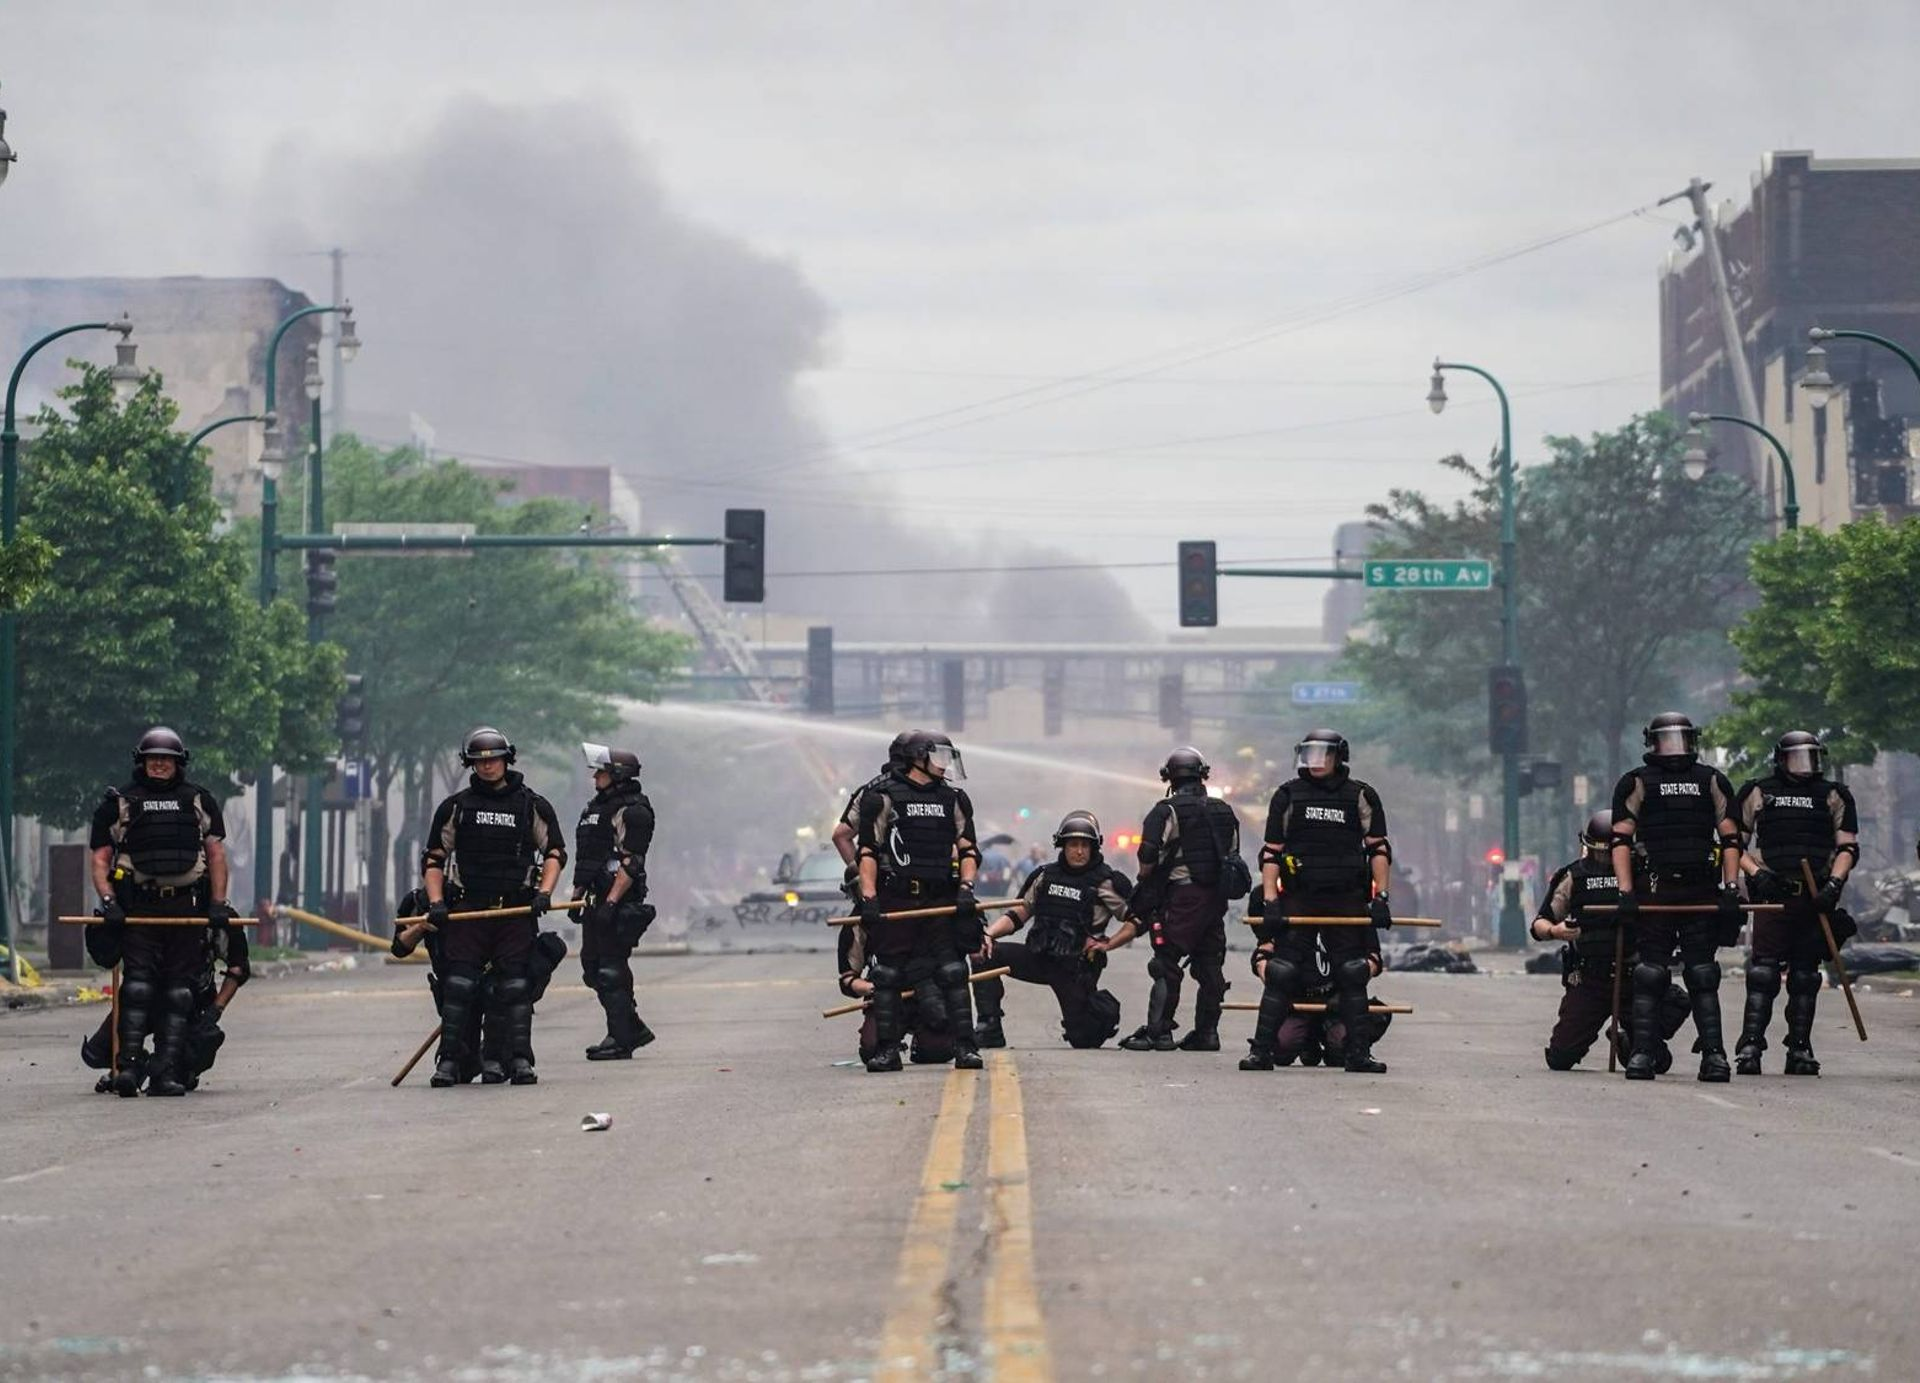 Riot police form a line on a Minneapolis street REWIRE PBS Black Lives Our Future